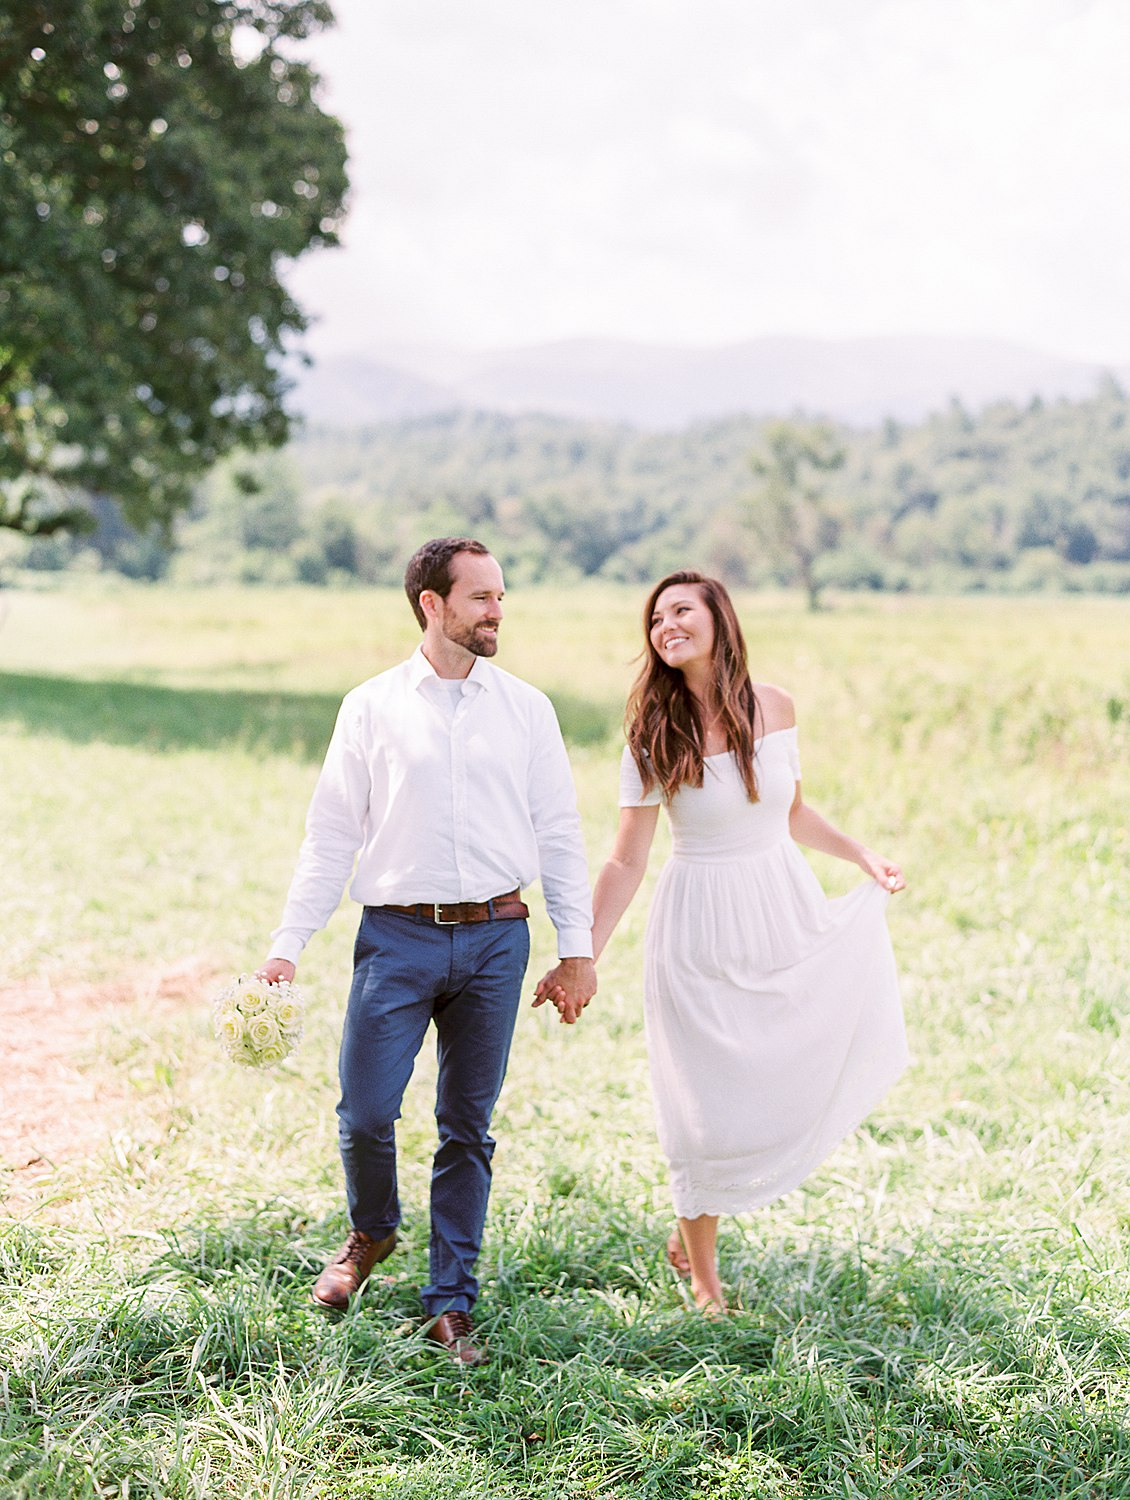 elopement-in-cades-cove-great-smoky-mountains-wedding-photographer